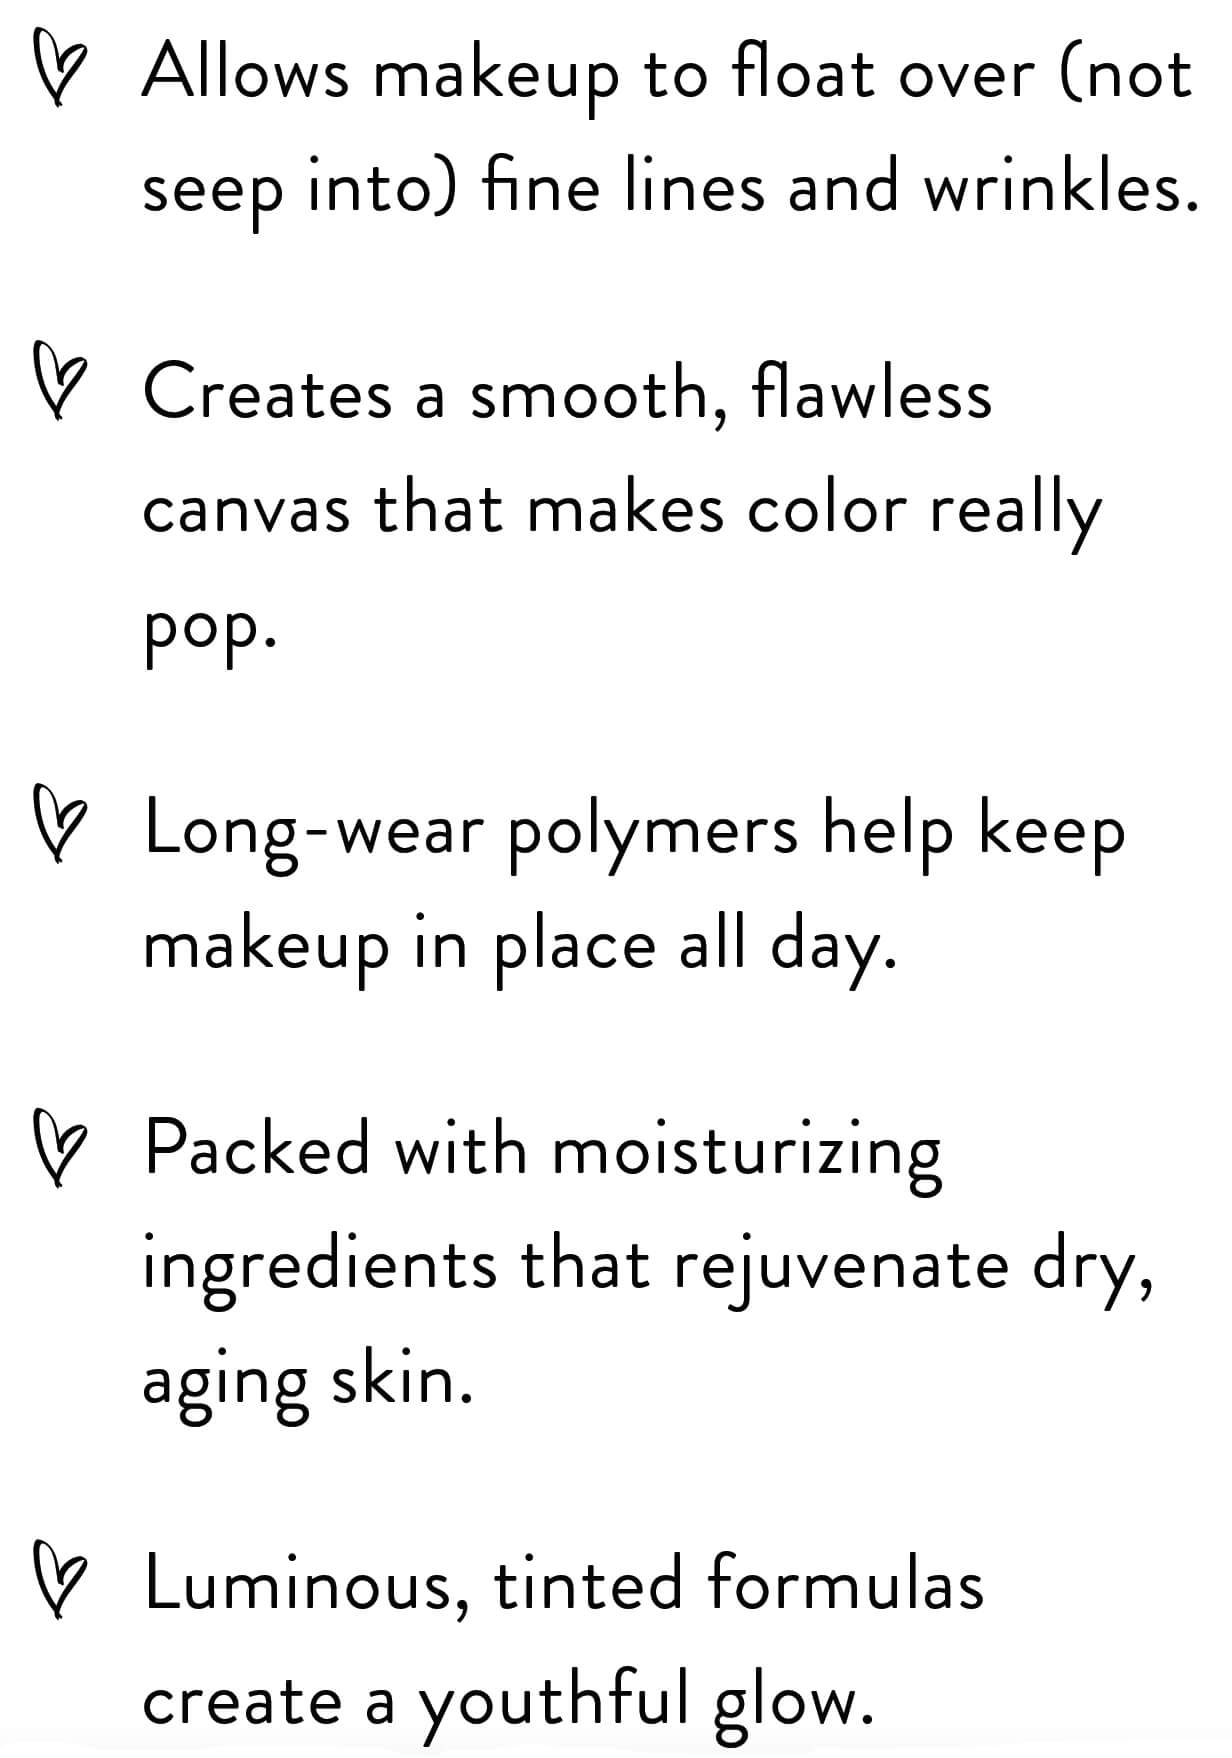 Allows makeup to float over (not seep into) fine lines and wrinkles. Creates a smooth, flawless canvas that makes color really pop. Long-wear polymers help keep makeup in place all day. Packed with moisturizing ingredients that rejuvenate dry, aging skin. Luminous, tinted formulas create a youthful glow.